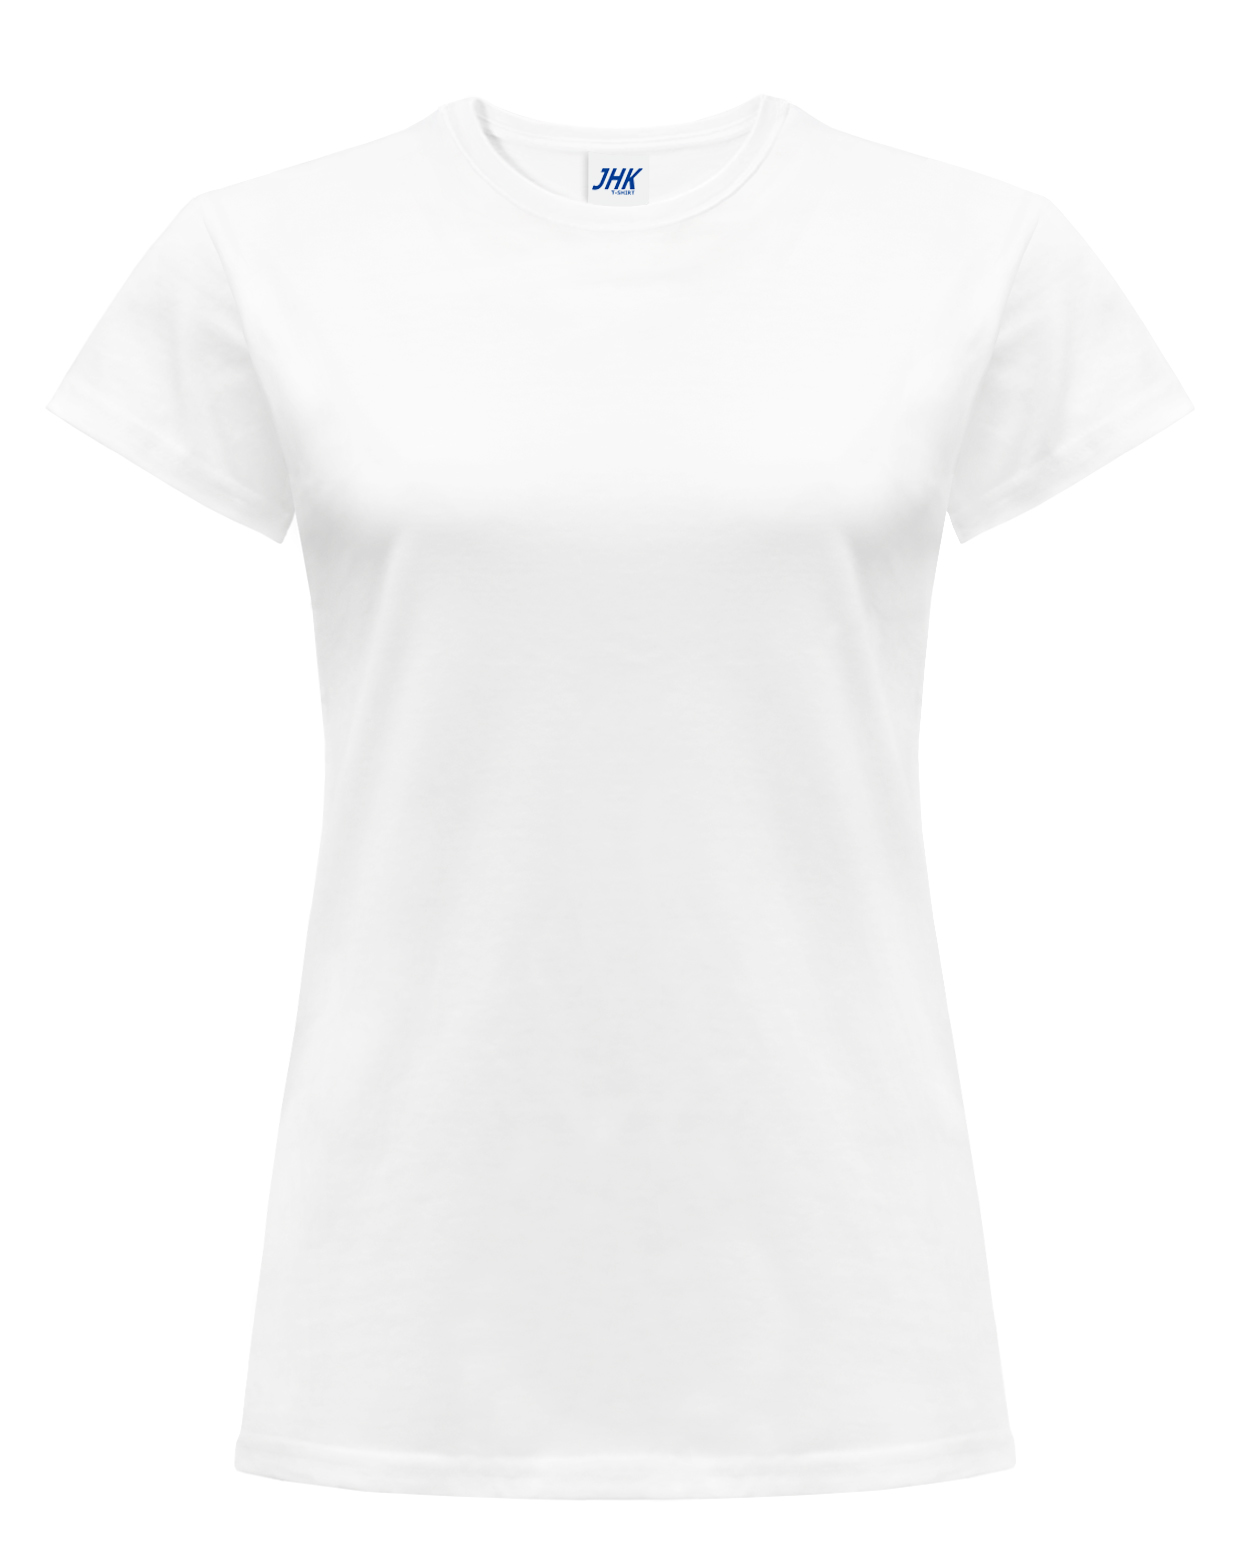 LADY WHITE LONG T-SHIRT - TSRLCMFWLT